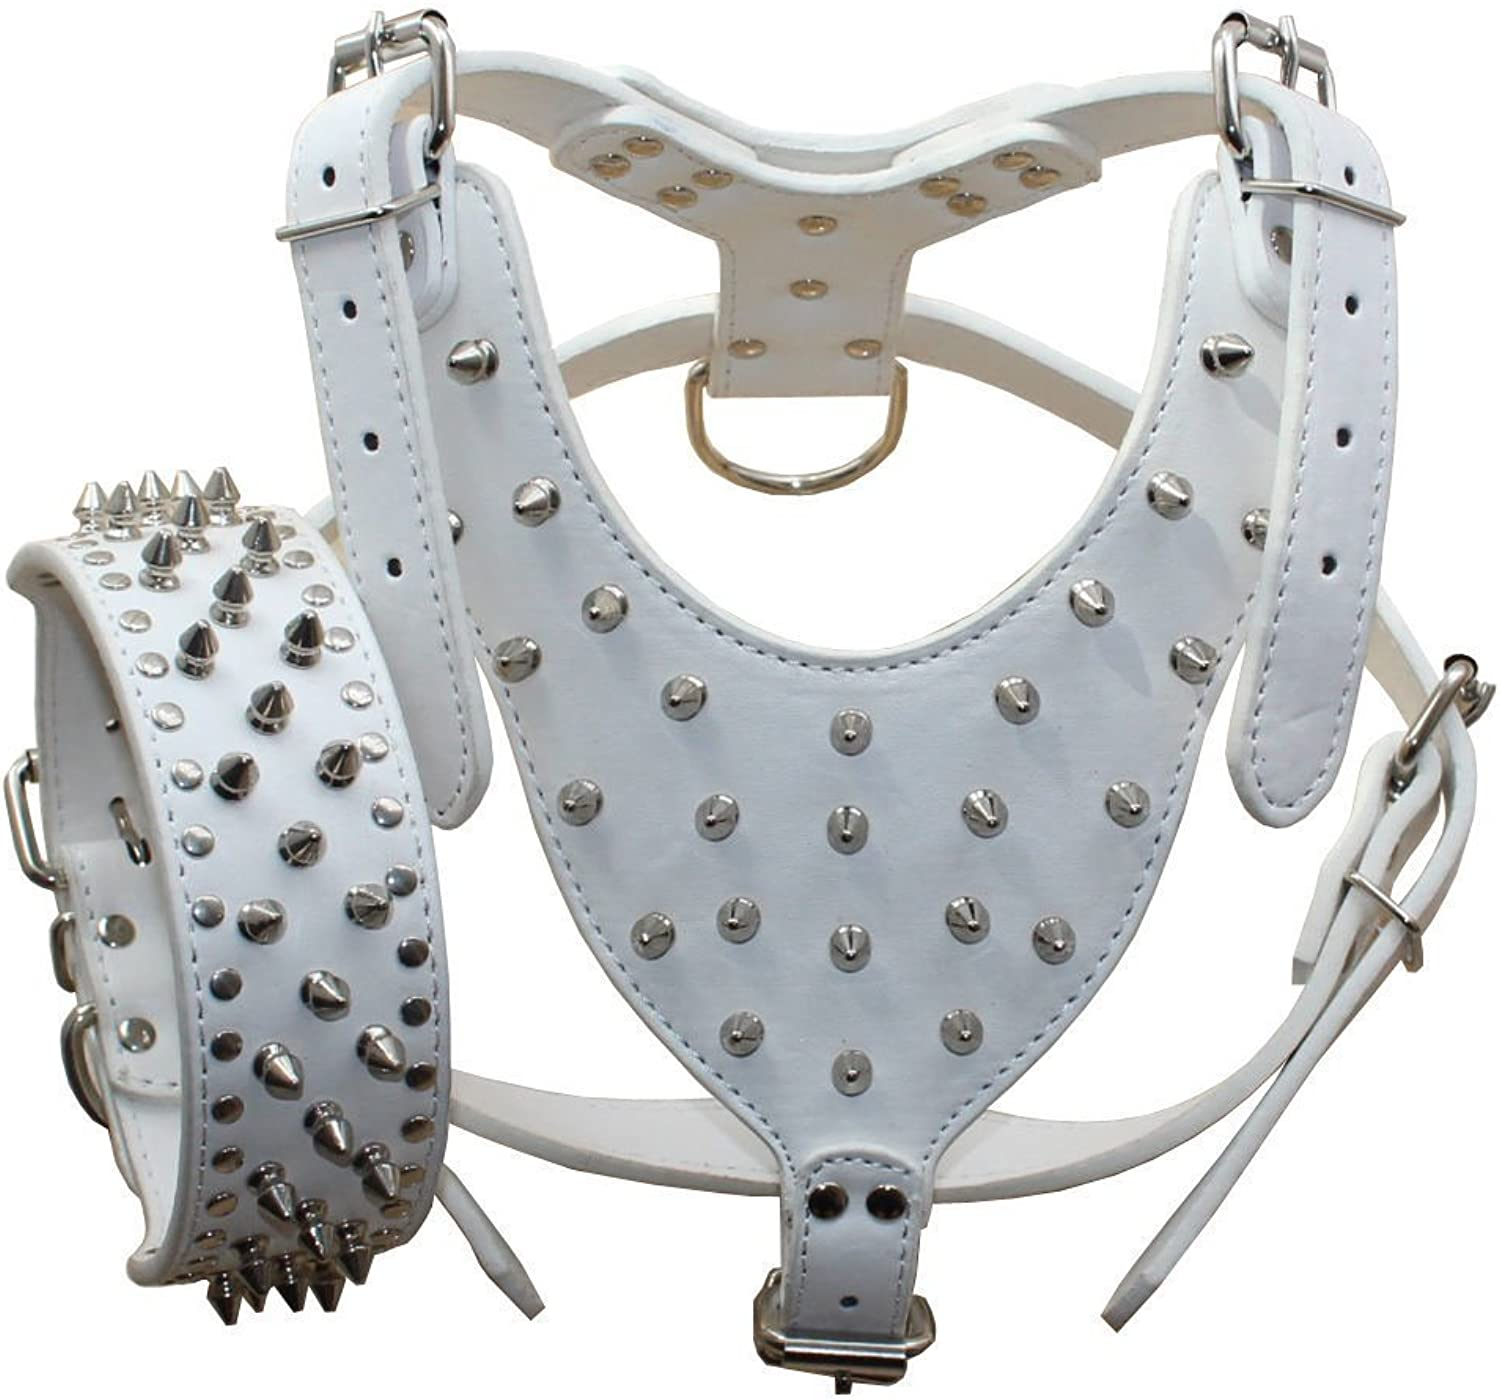 Avenpets American Pit Bull Terrier Leather Harness and Collar Set for Walking and Training with Adjustable Straps,White,XL